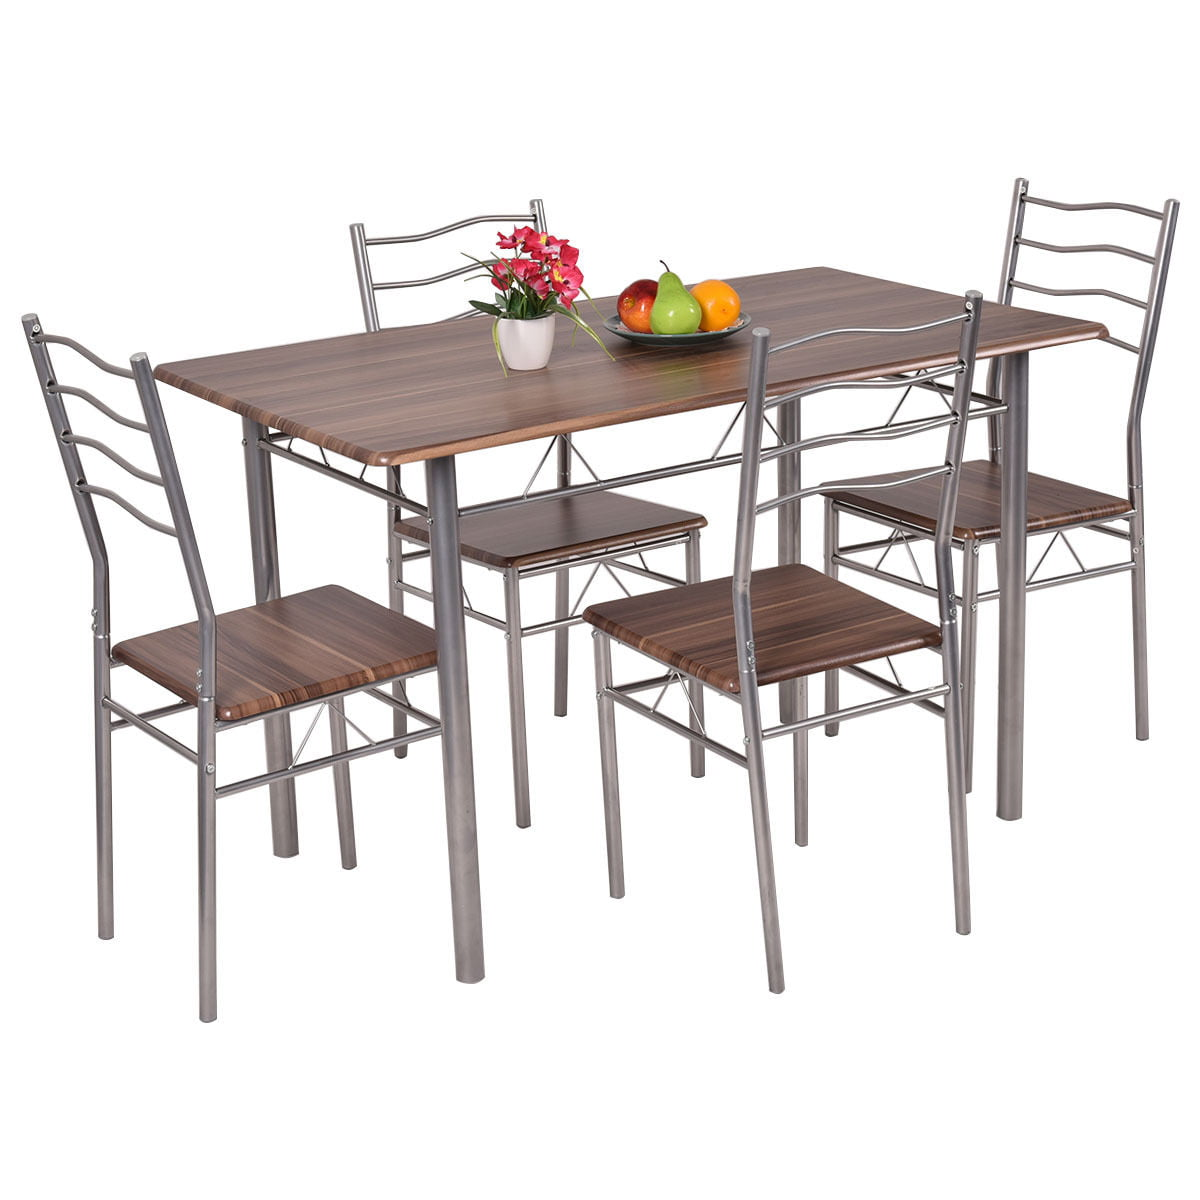 Modern Wood Kitchen Table costway 5 piece dining set wood metal table and 4 chairs kitchen